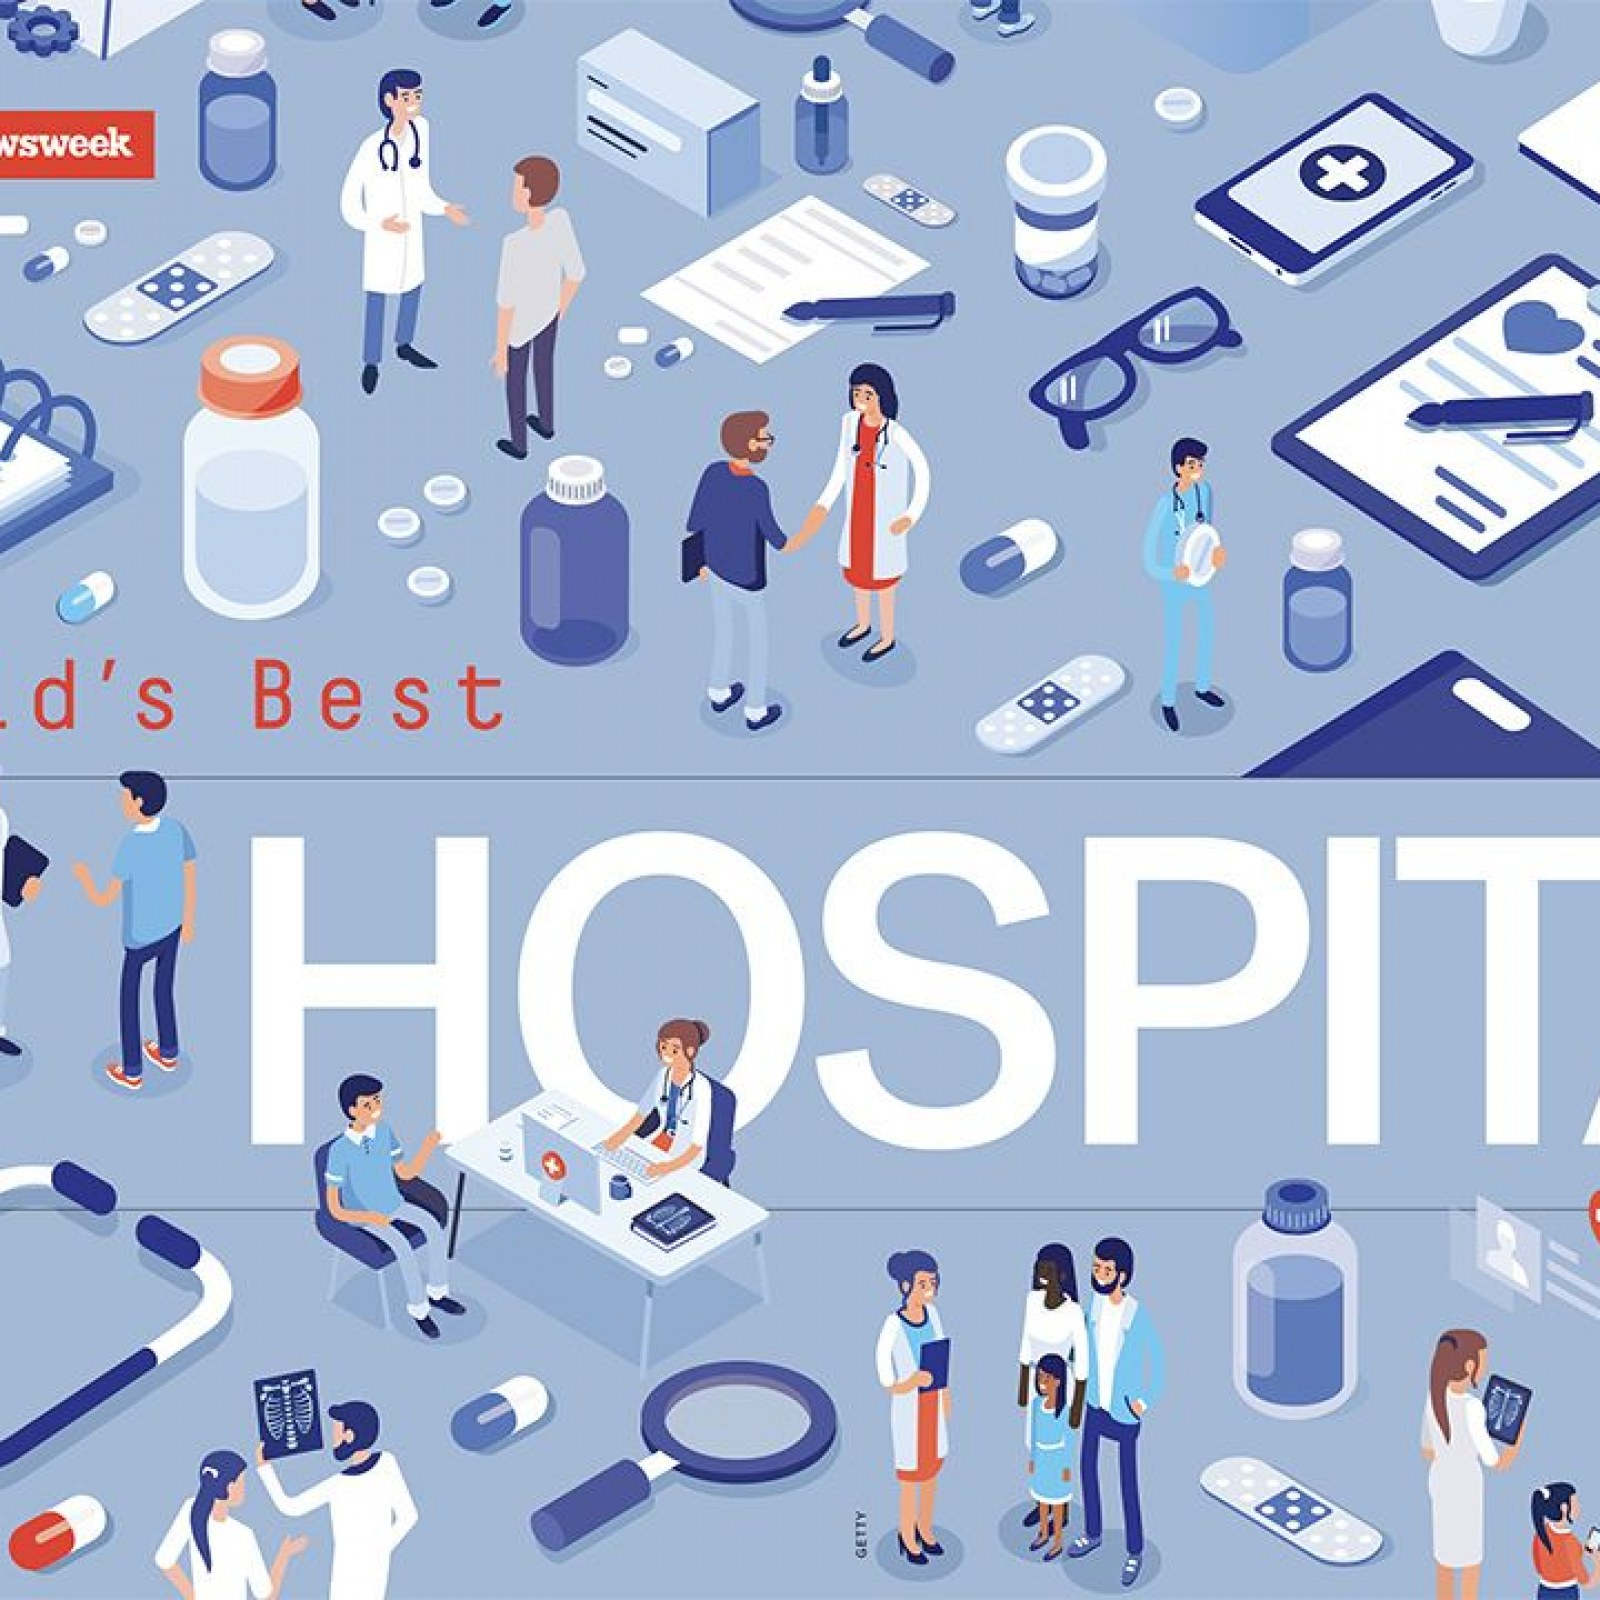 The 10 Best Hospitals in the World